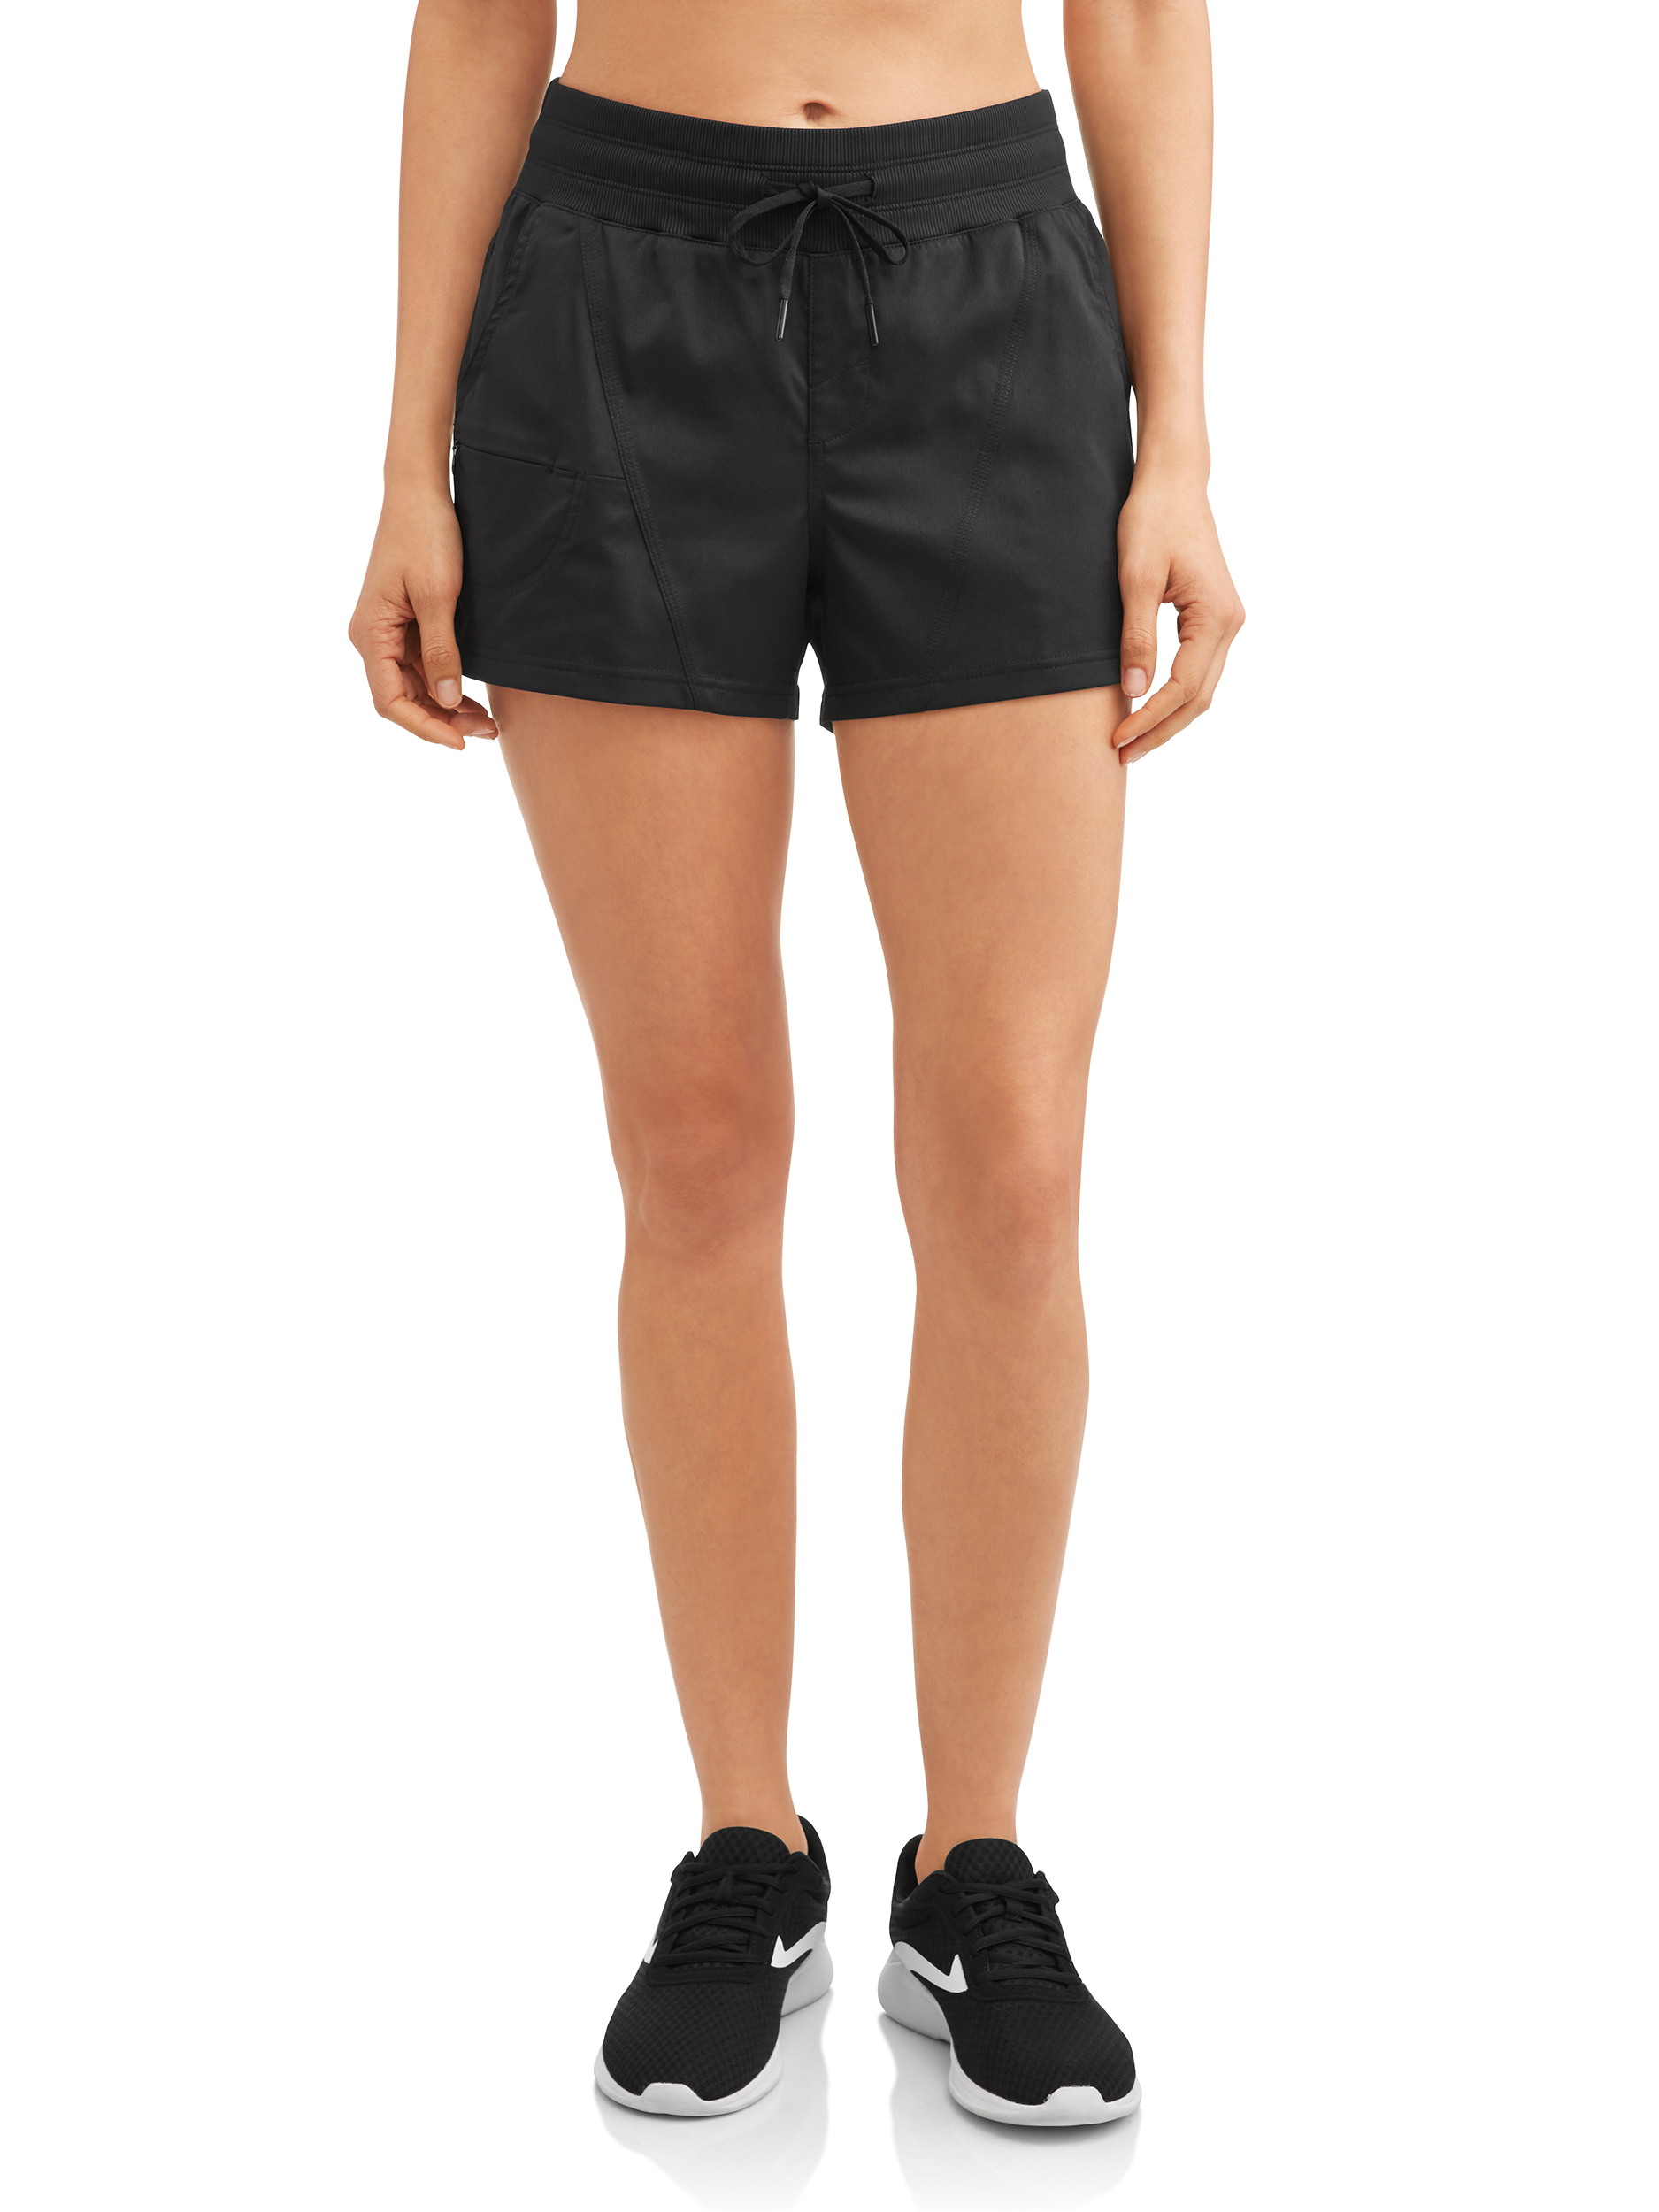 Athletic Works - Athletic Works Women's